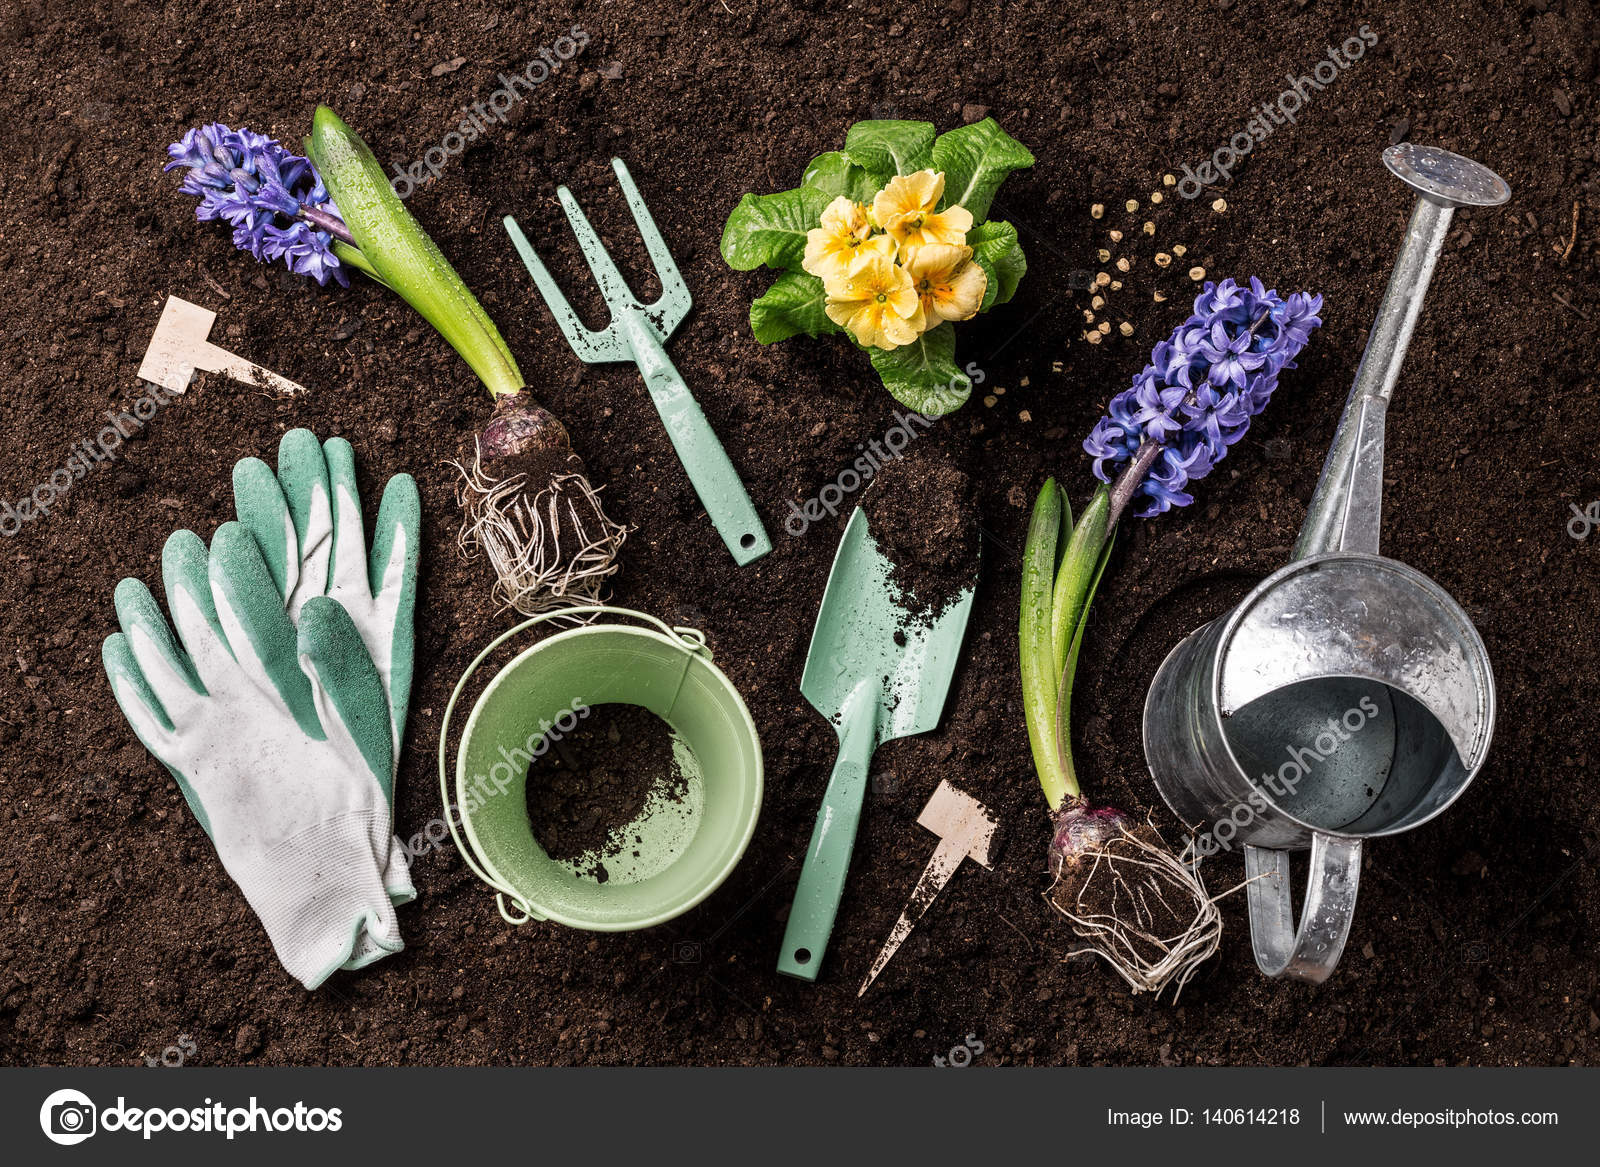 Spring Garden Works. Gardening Tools And Flowers On Soil Background. U2014  Stock Photo